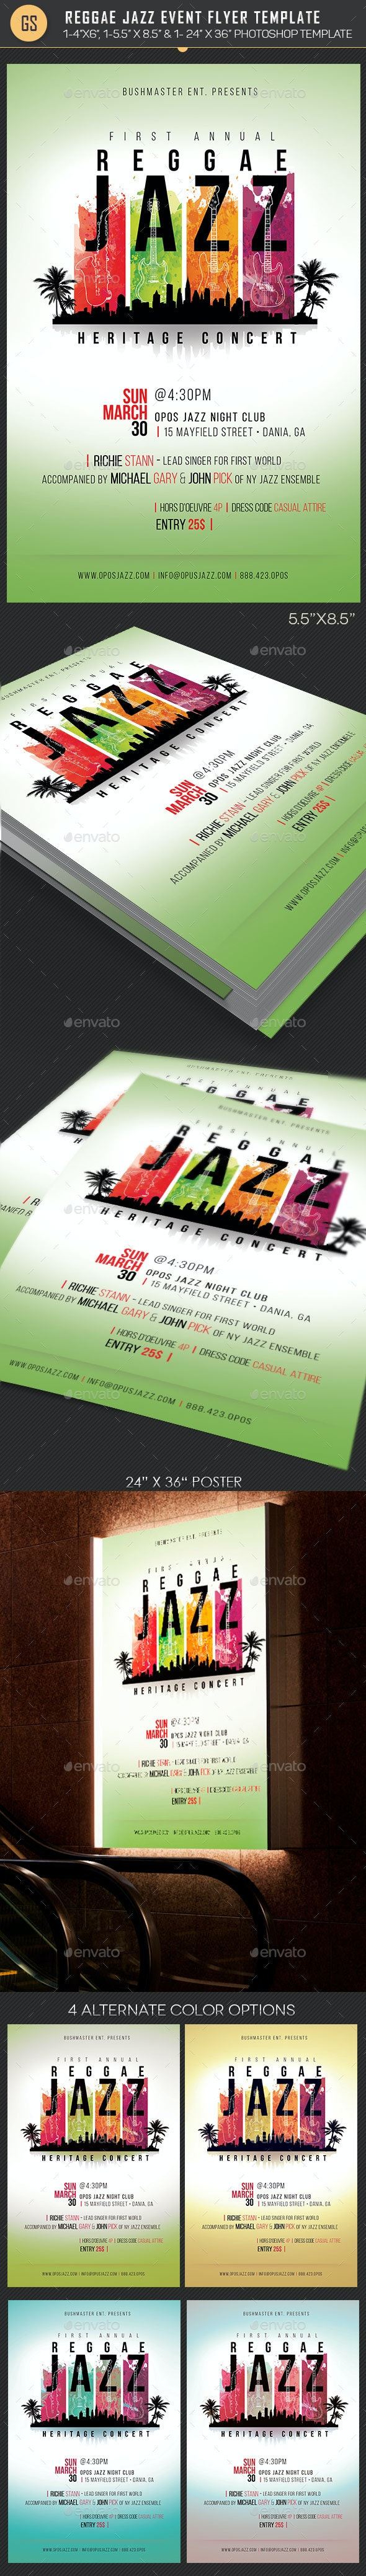 Reggae Jazz Event Flyer Poster Template - Events Flyers